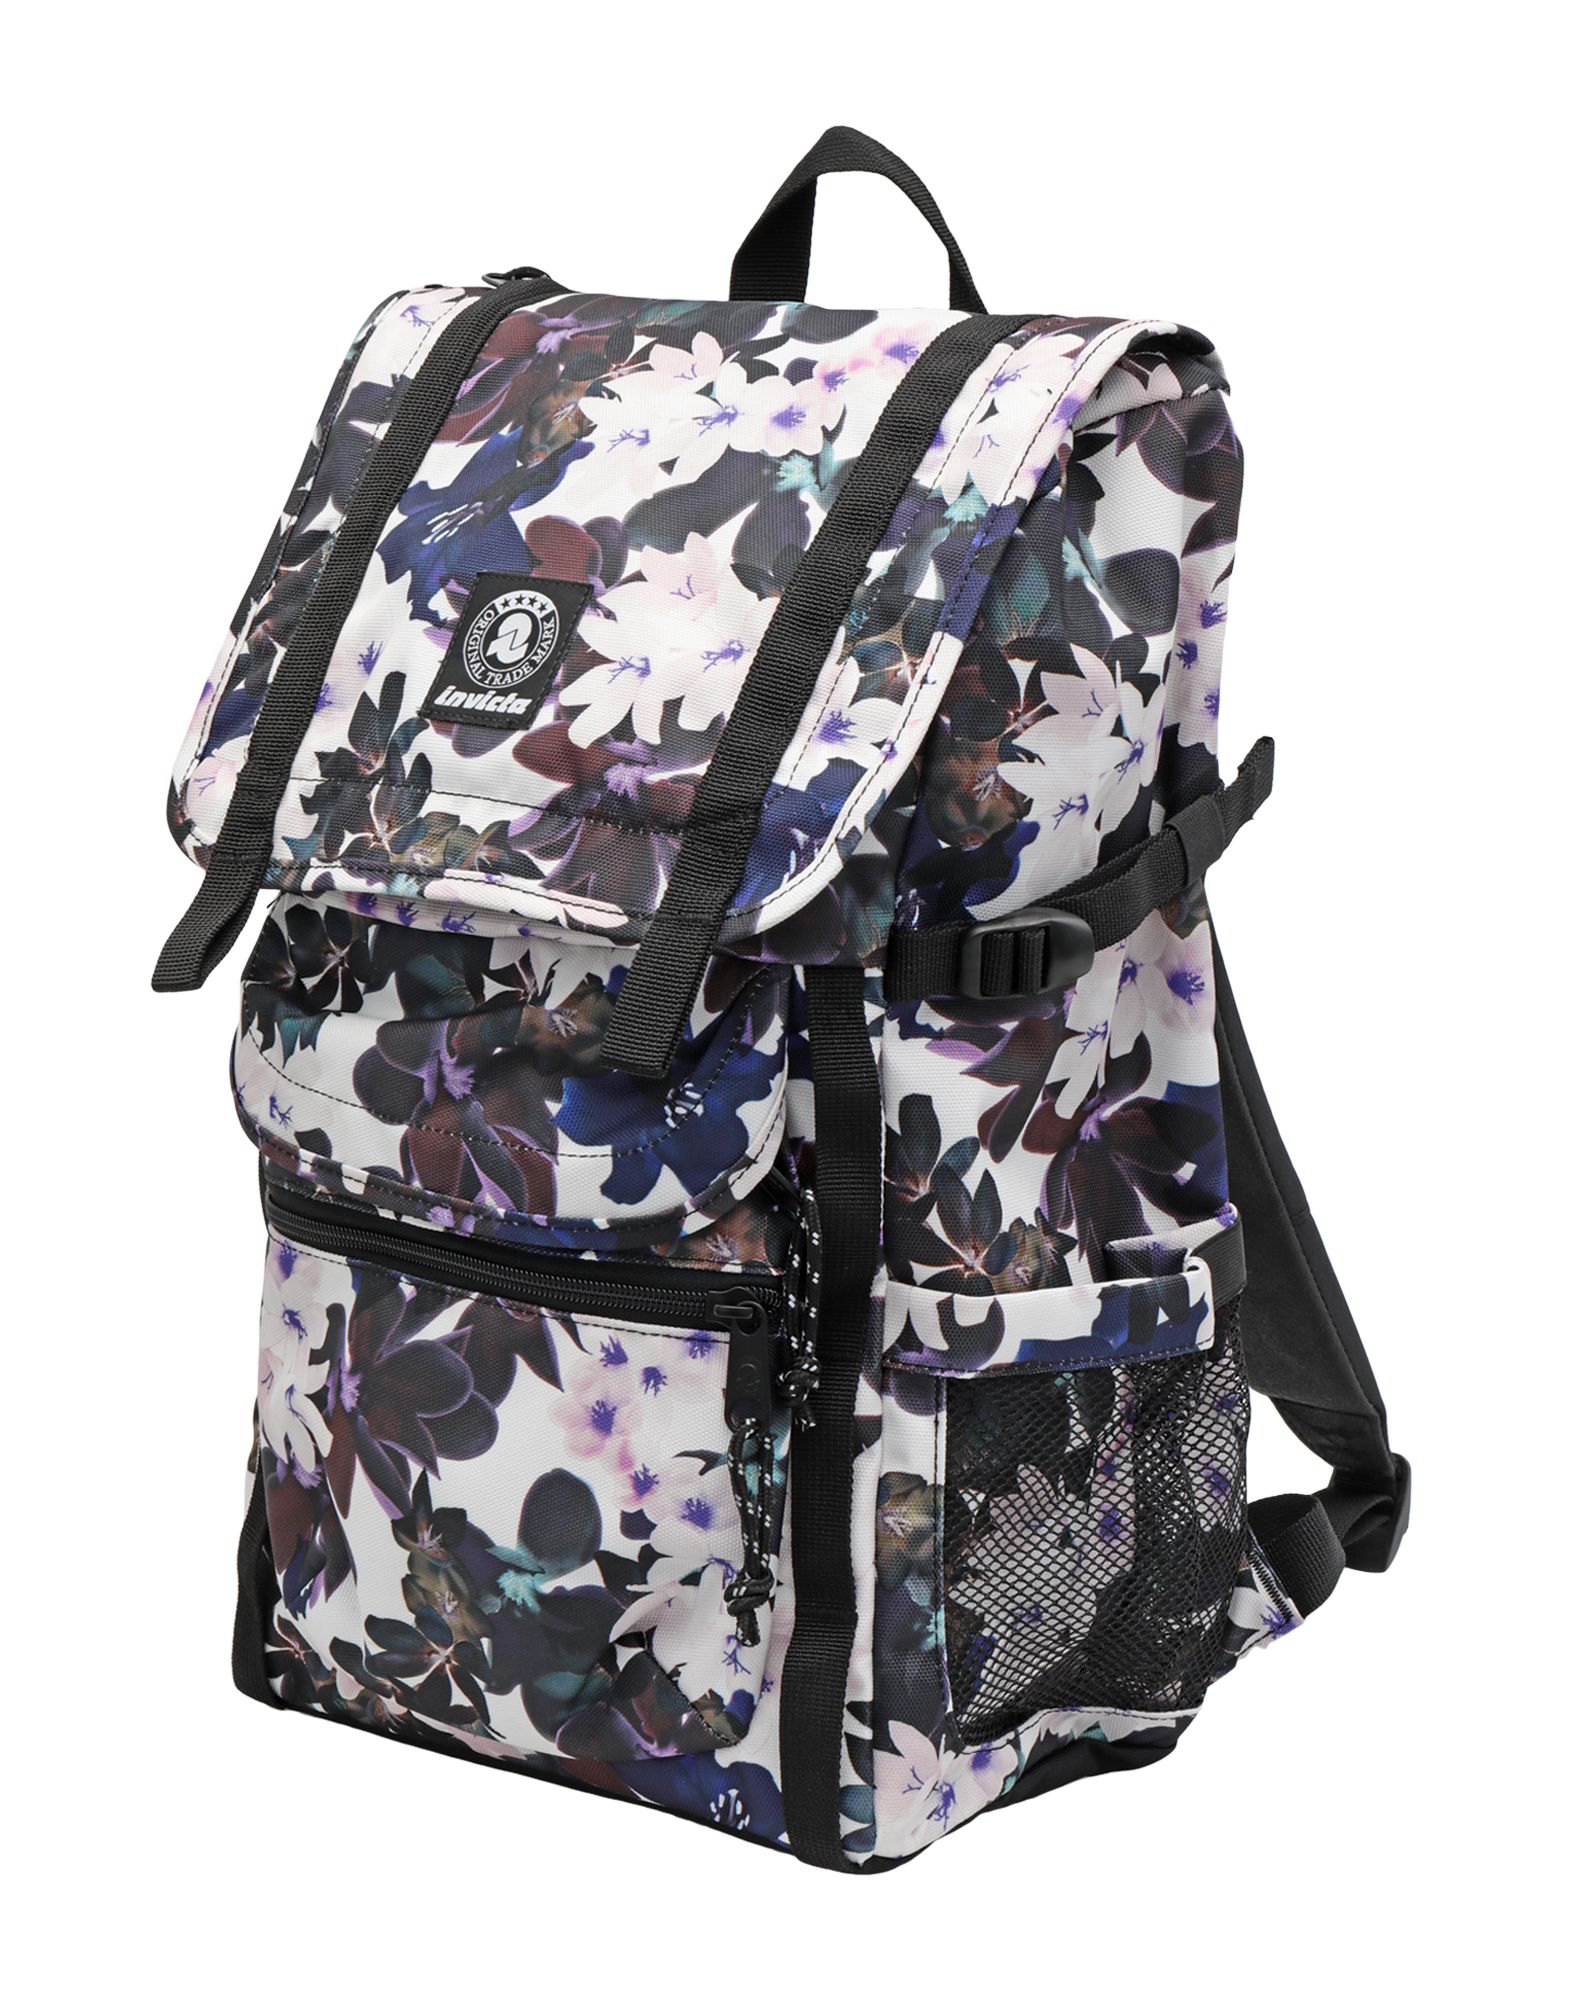 Invicta Backpacks & Fanny Packs In Ivory